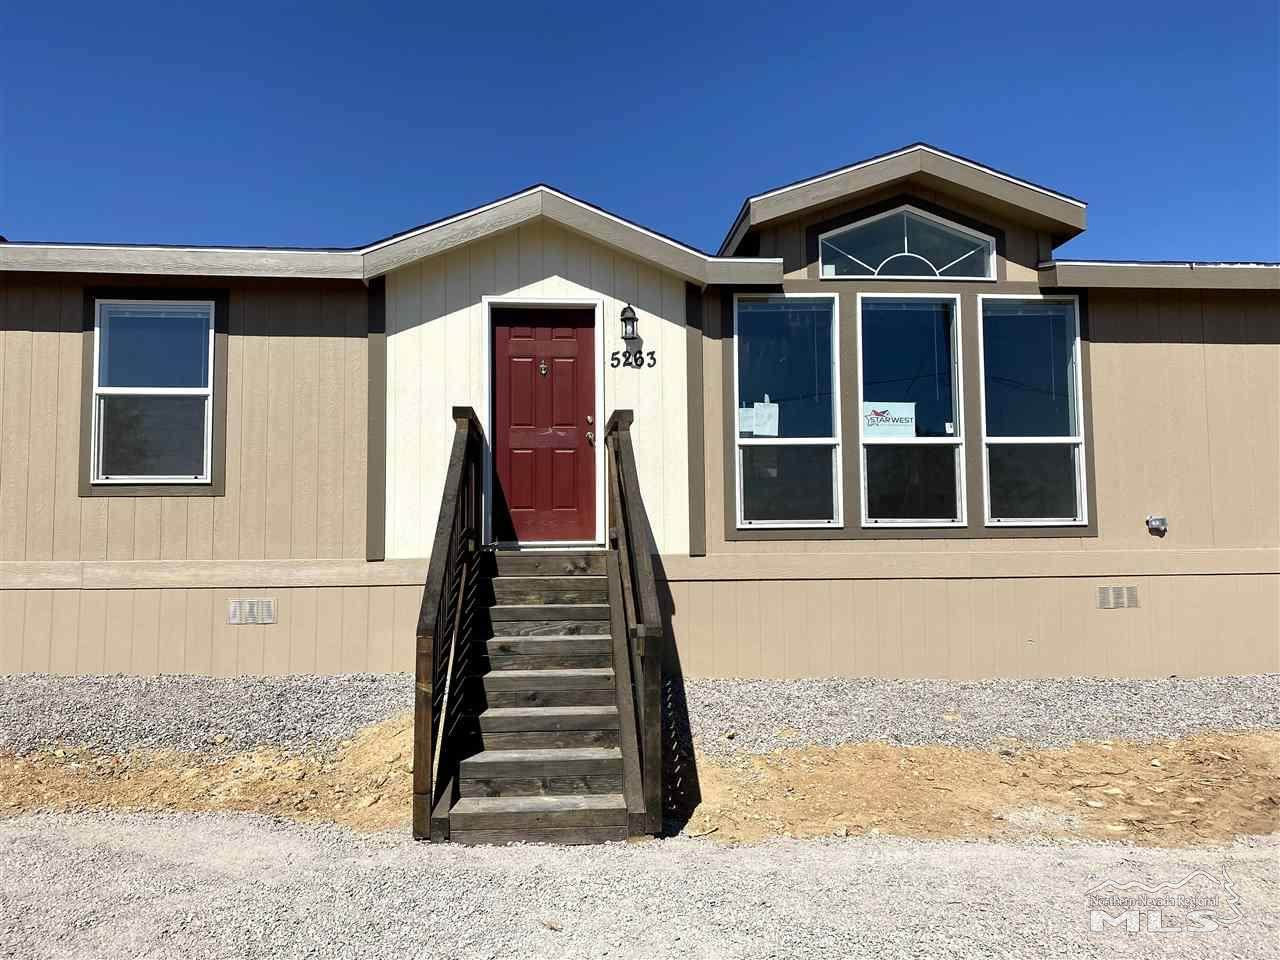 5263 Slope Drive - Photo 1